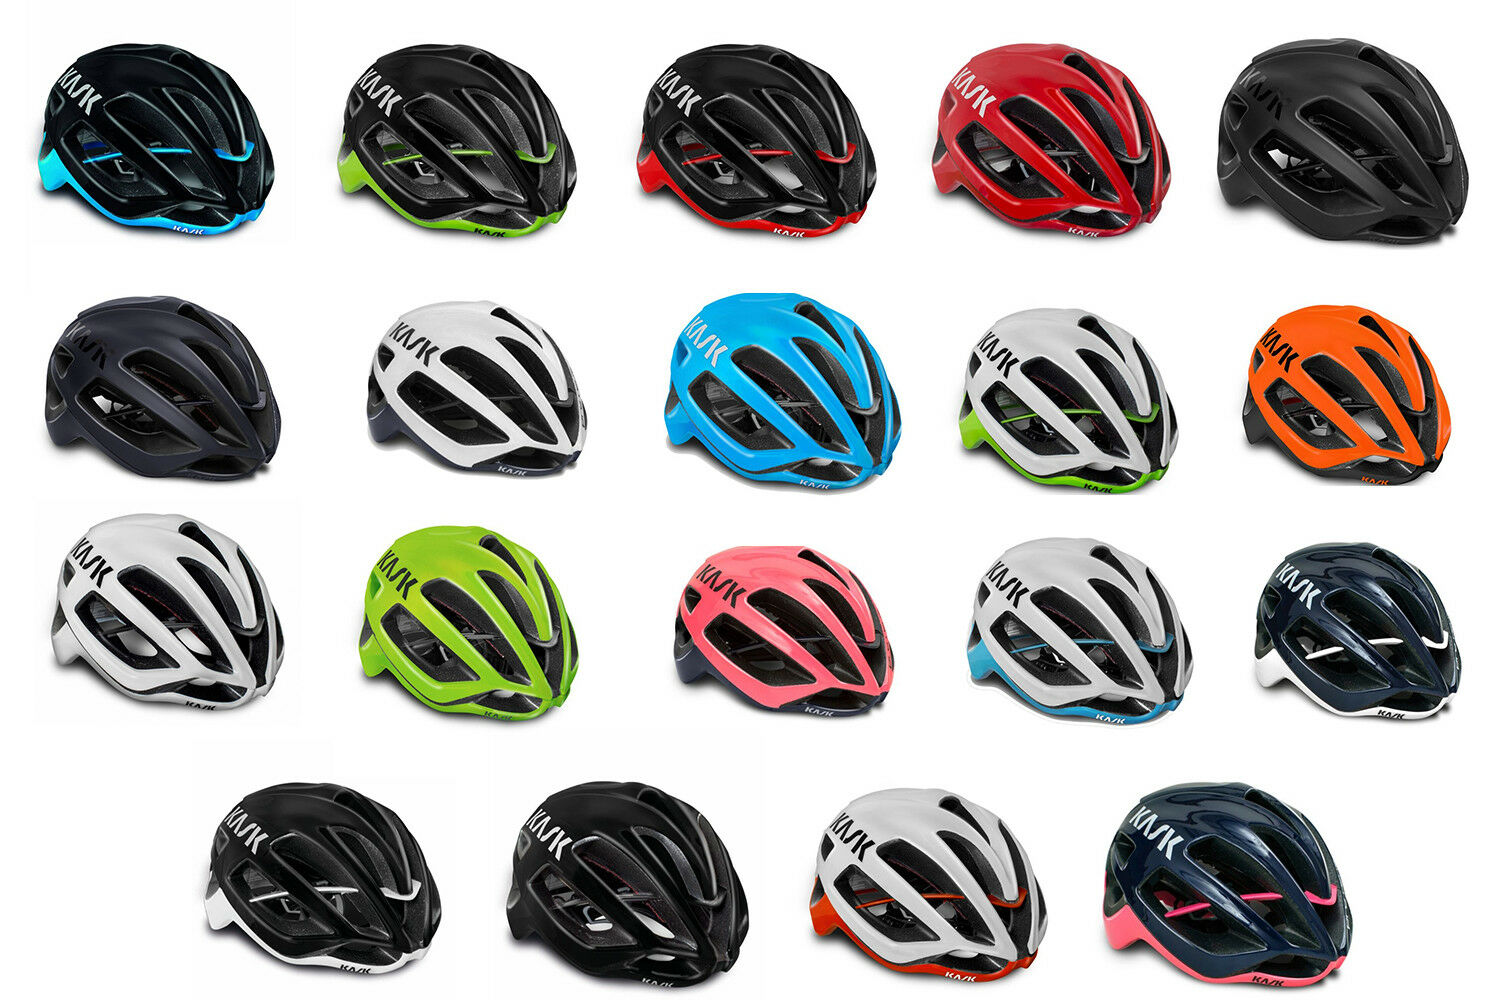 NEW 2018 KASK Predone Helmet - Available in different sizes and colors